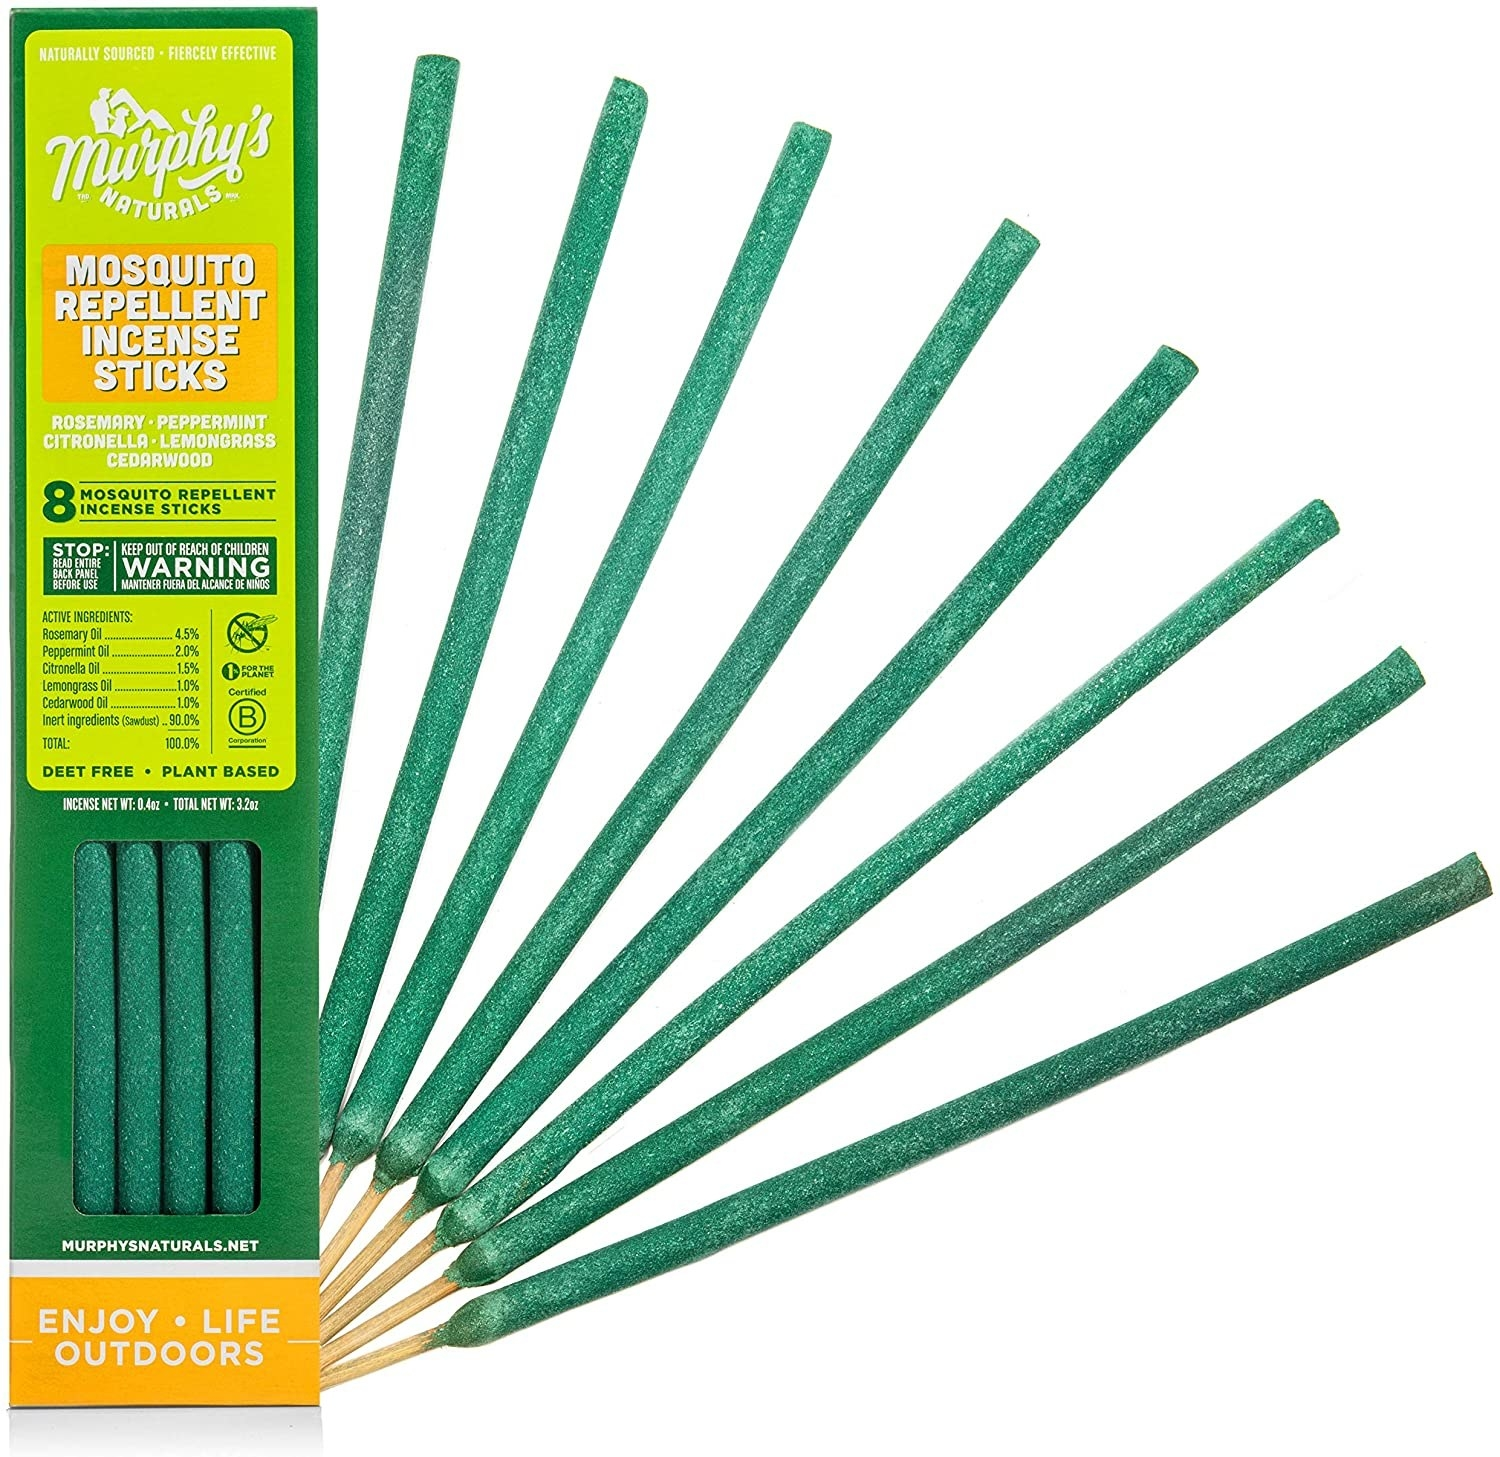 The thin green sticks in their packaging